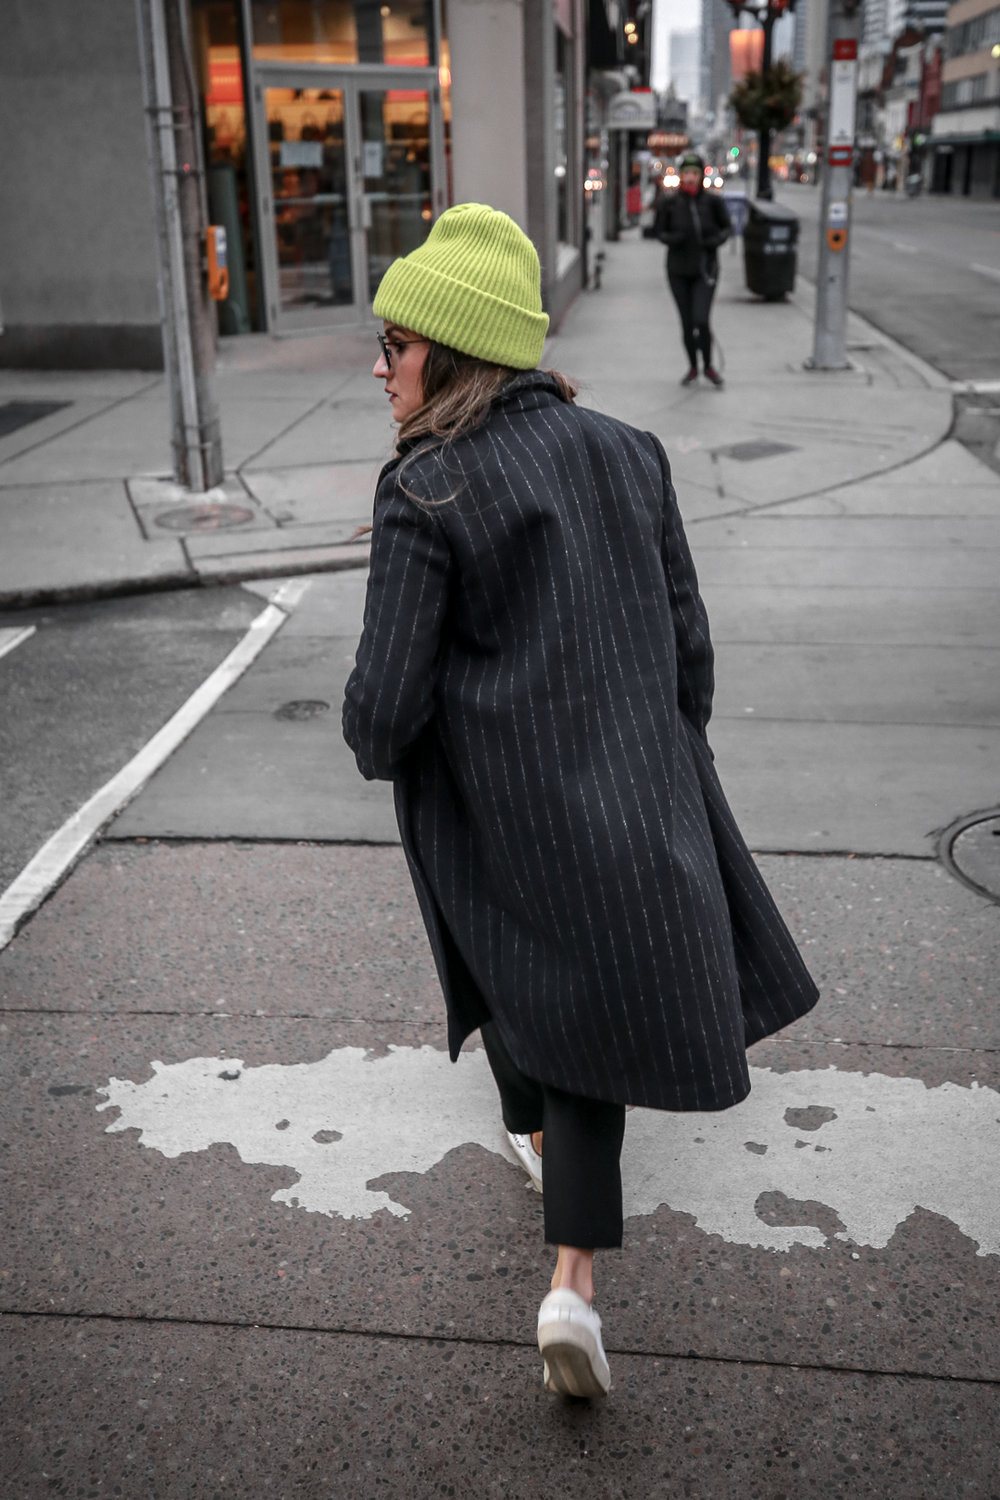 Nathalie Martin wearing Balenciaga cropped logo sweater, Aritzia black Jallade pant, Saint Laurent white canvas court sneakers, Aritzia navy pinstripe Stedman coat, neon green beanie, Bonlook Way sunglasses, street style, woahstyle.com_3972.jpg